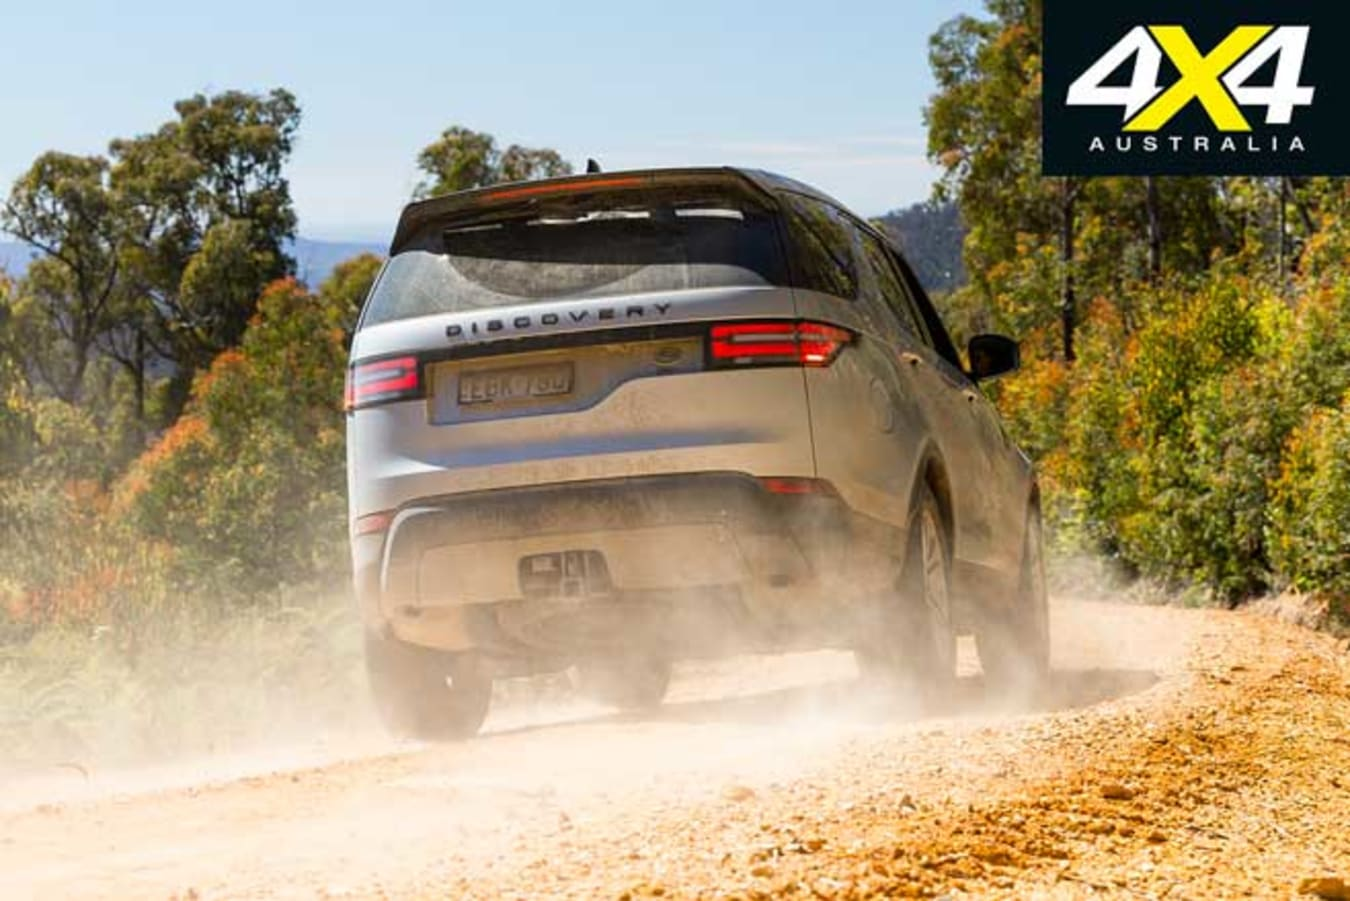 2020 4 X 4 Of The Year Land Rover Discovery Sd 6 Trail Drive Review Jpg